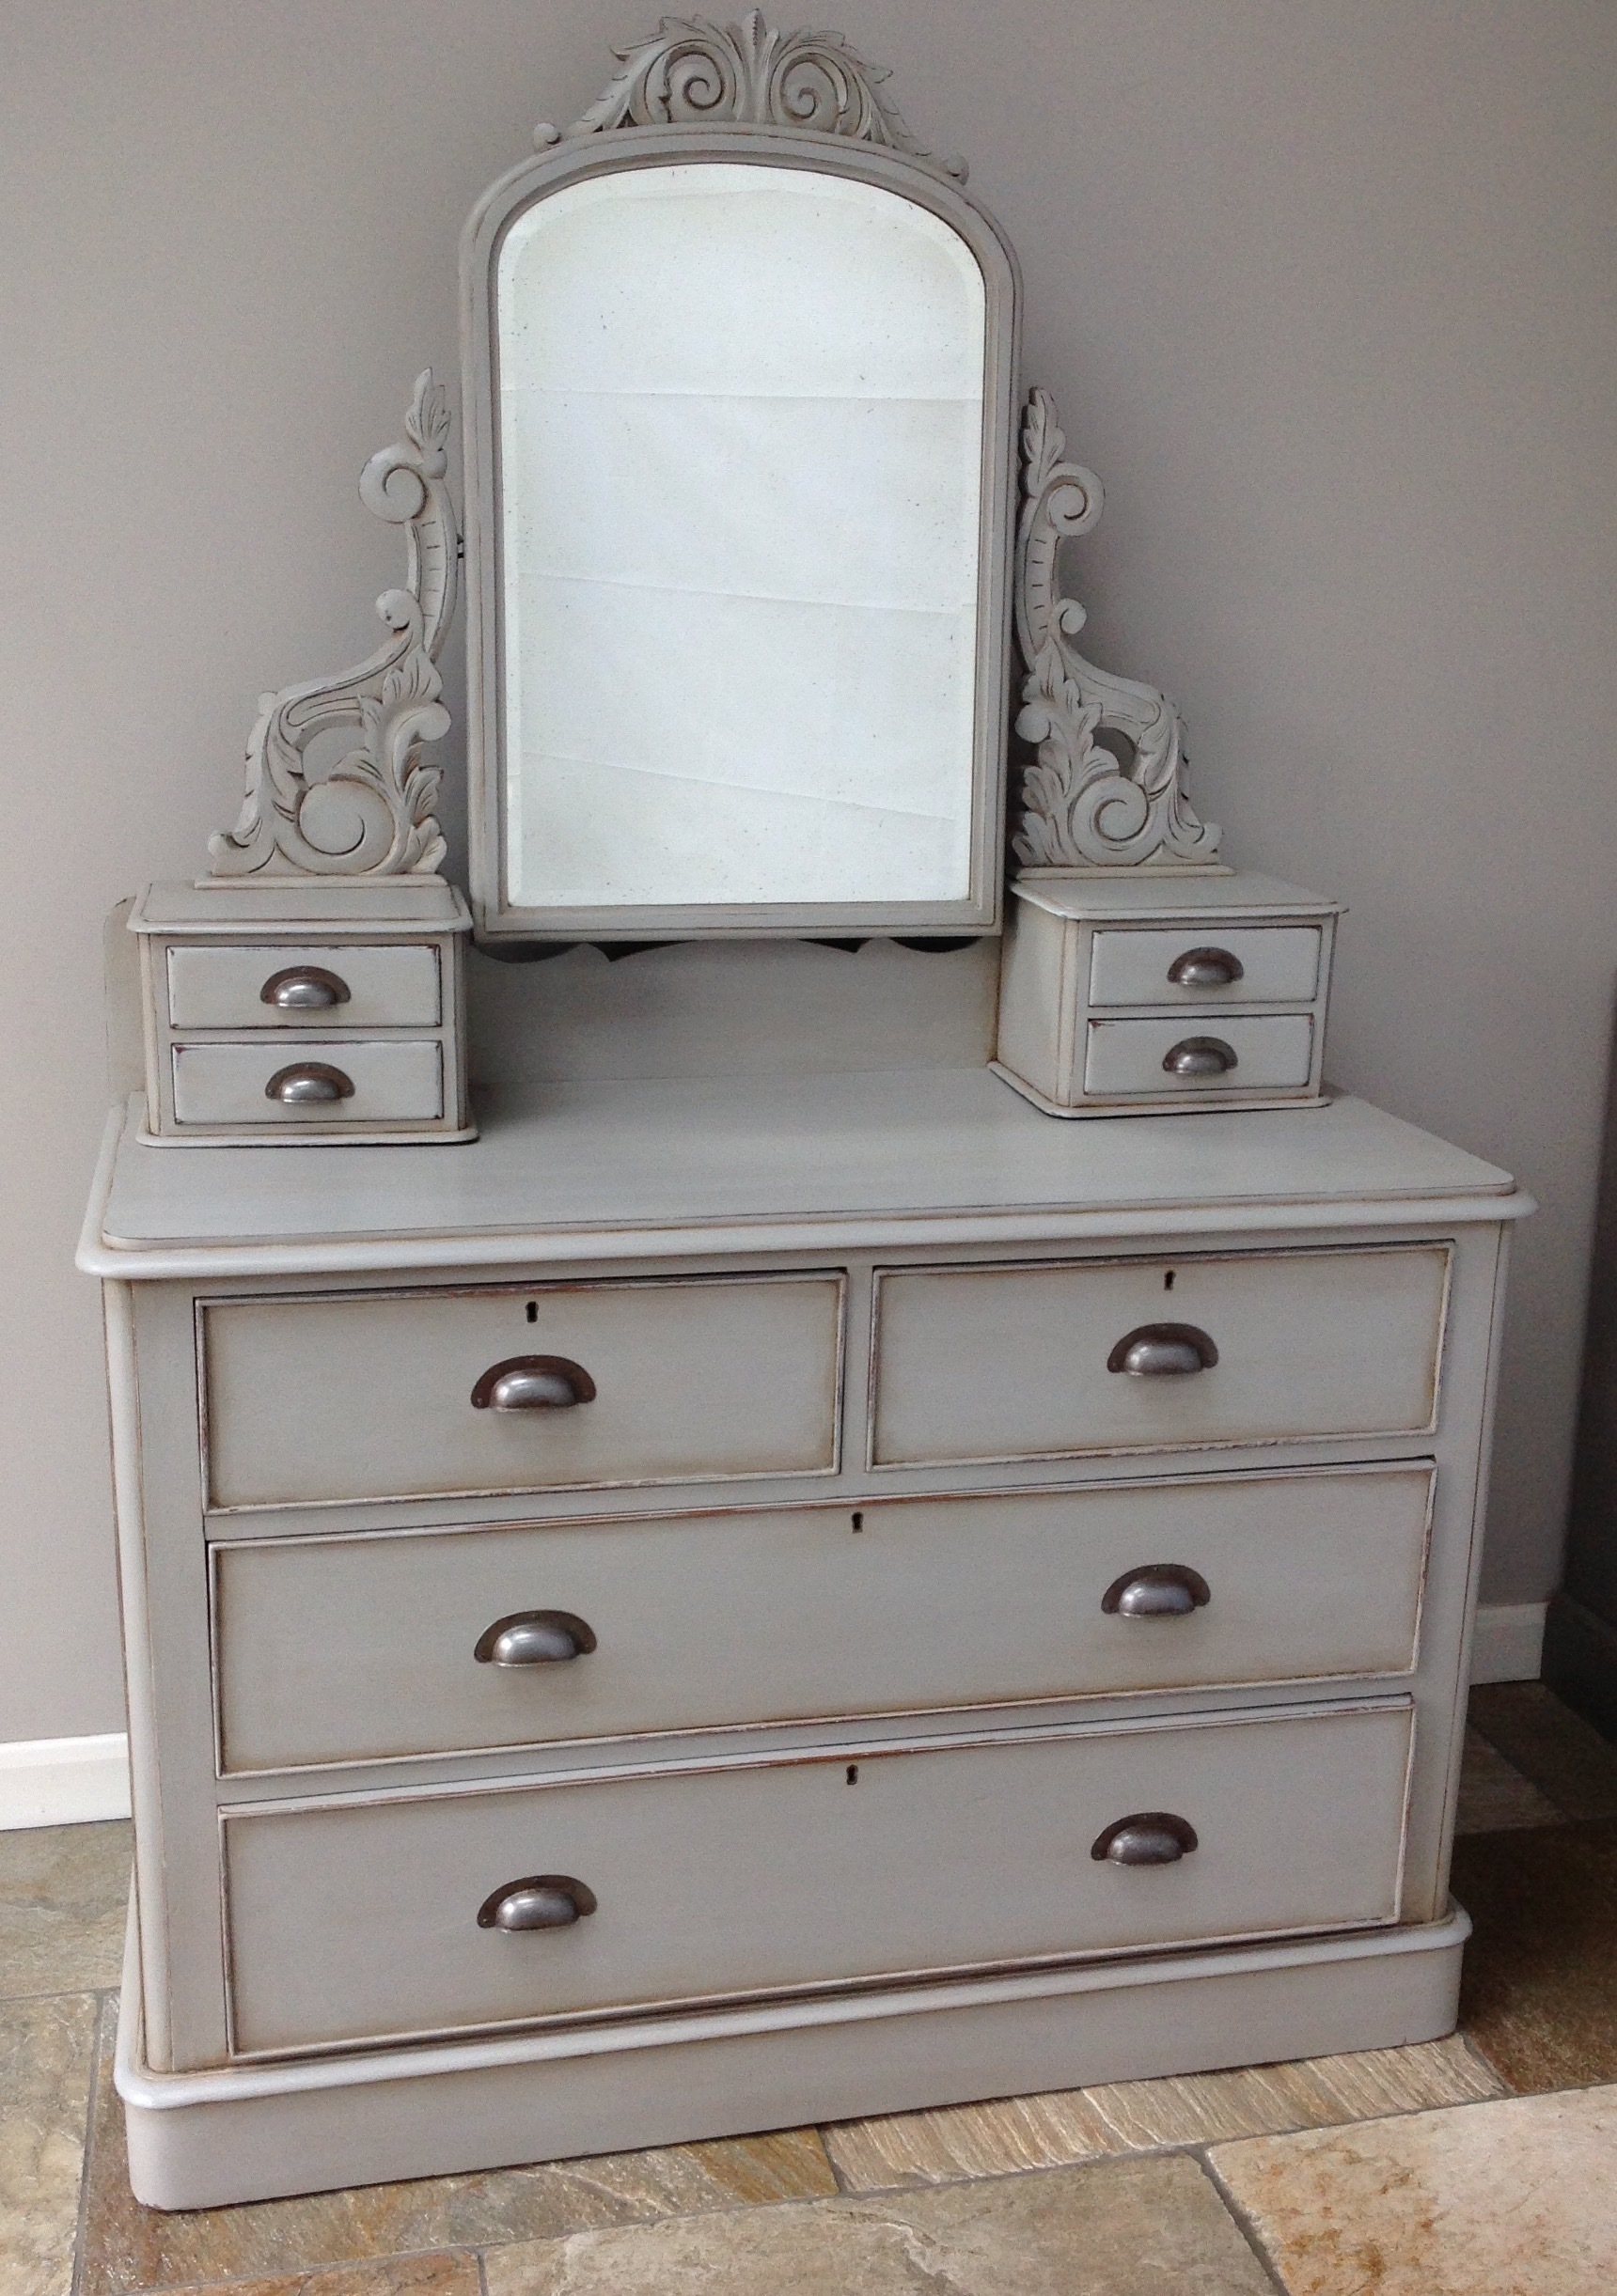 Antique Victorian Dressing Table With Mirror Chest Of Drawers Storage Cupboard Painted Grey Annie Sloan Chalk Paint